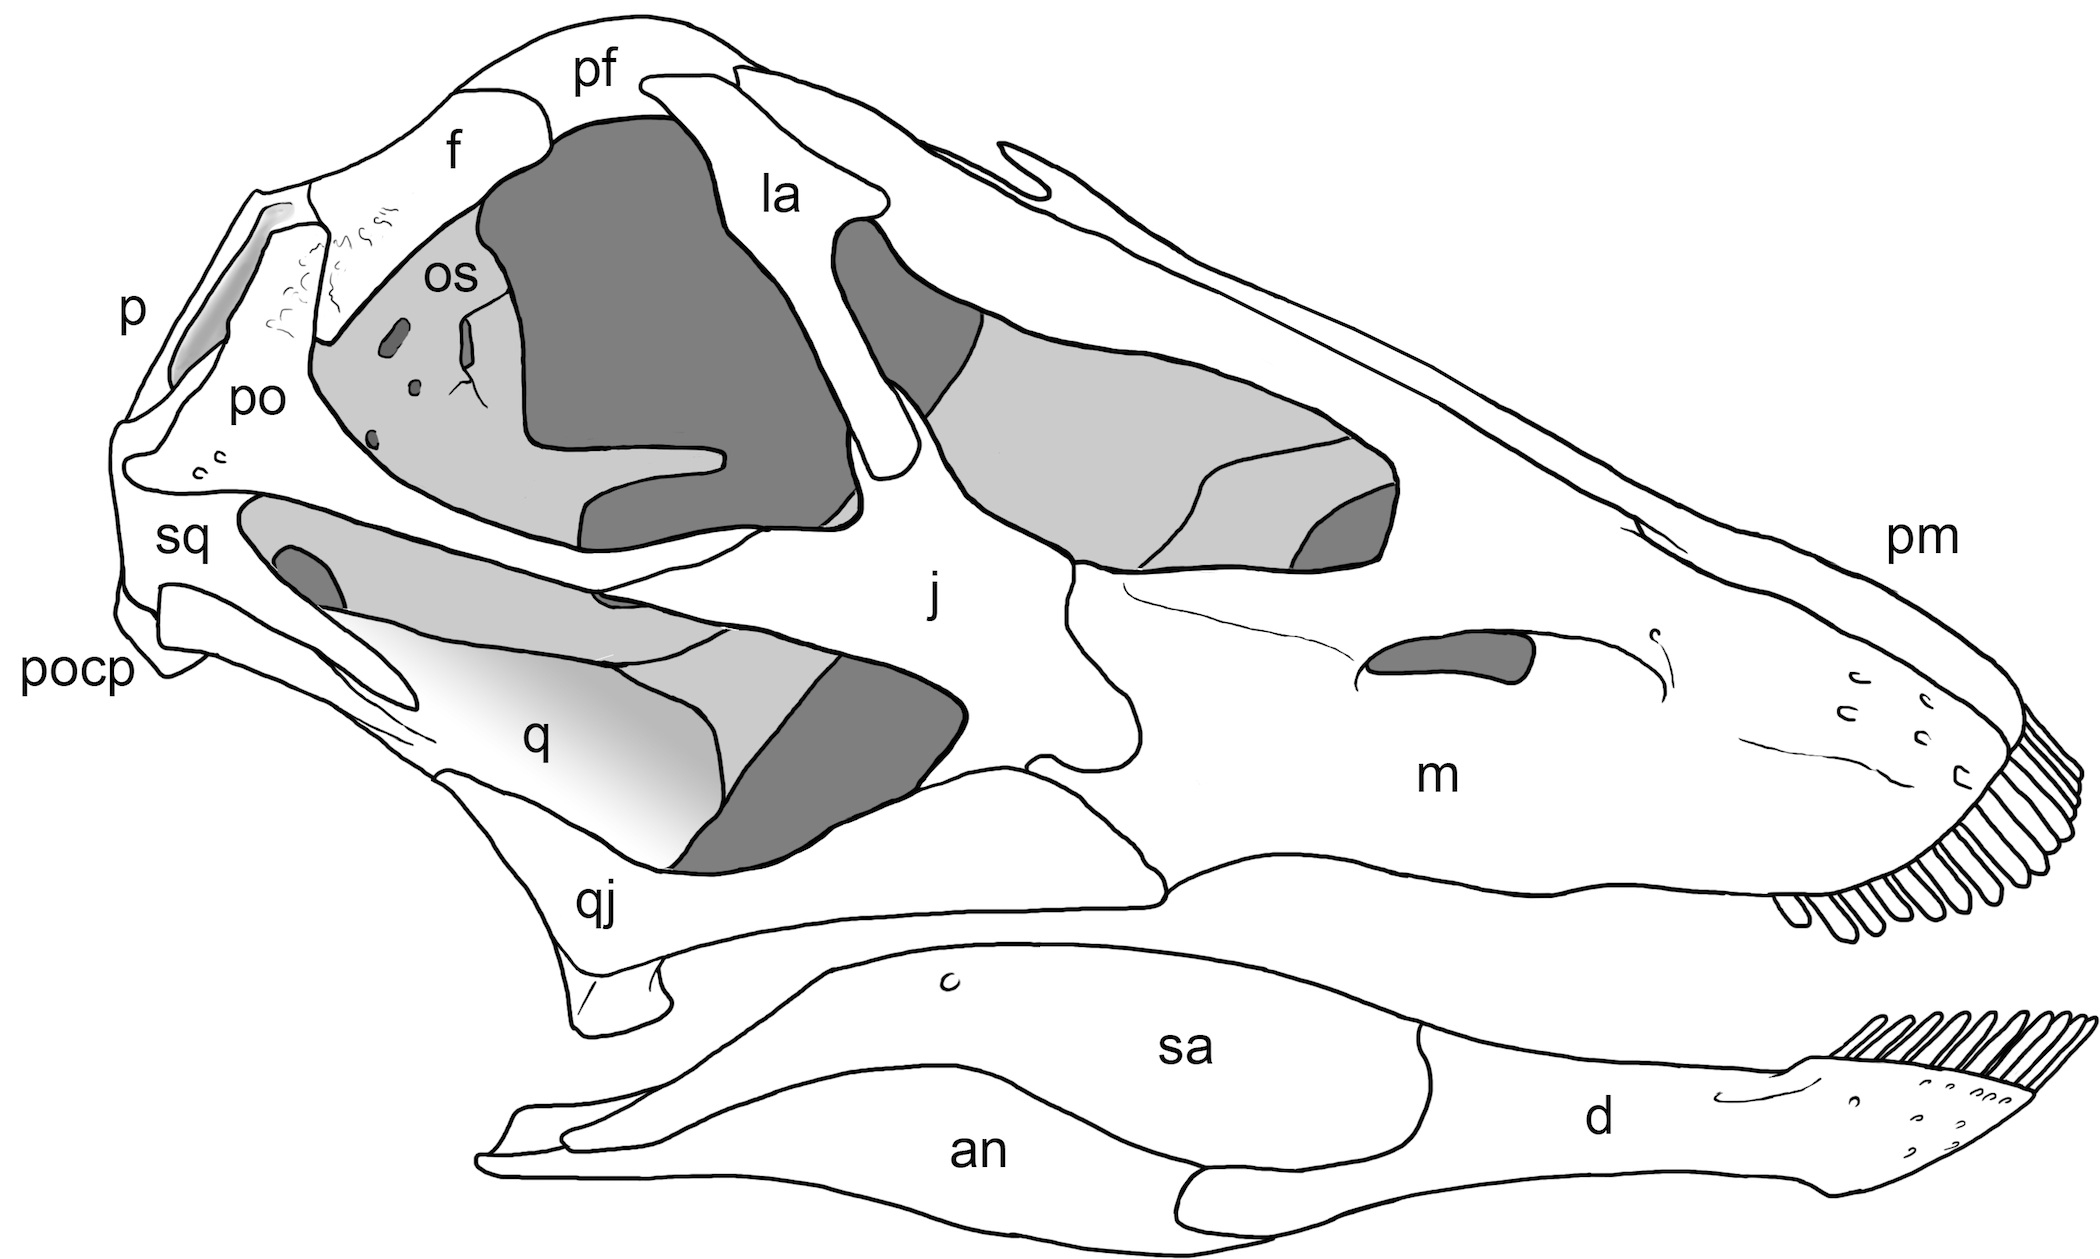 Osteology of Galeamopus pabsti sp. nov.